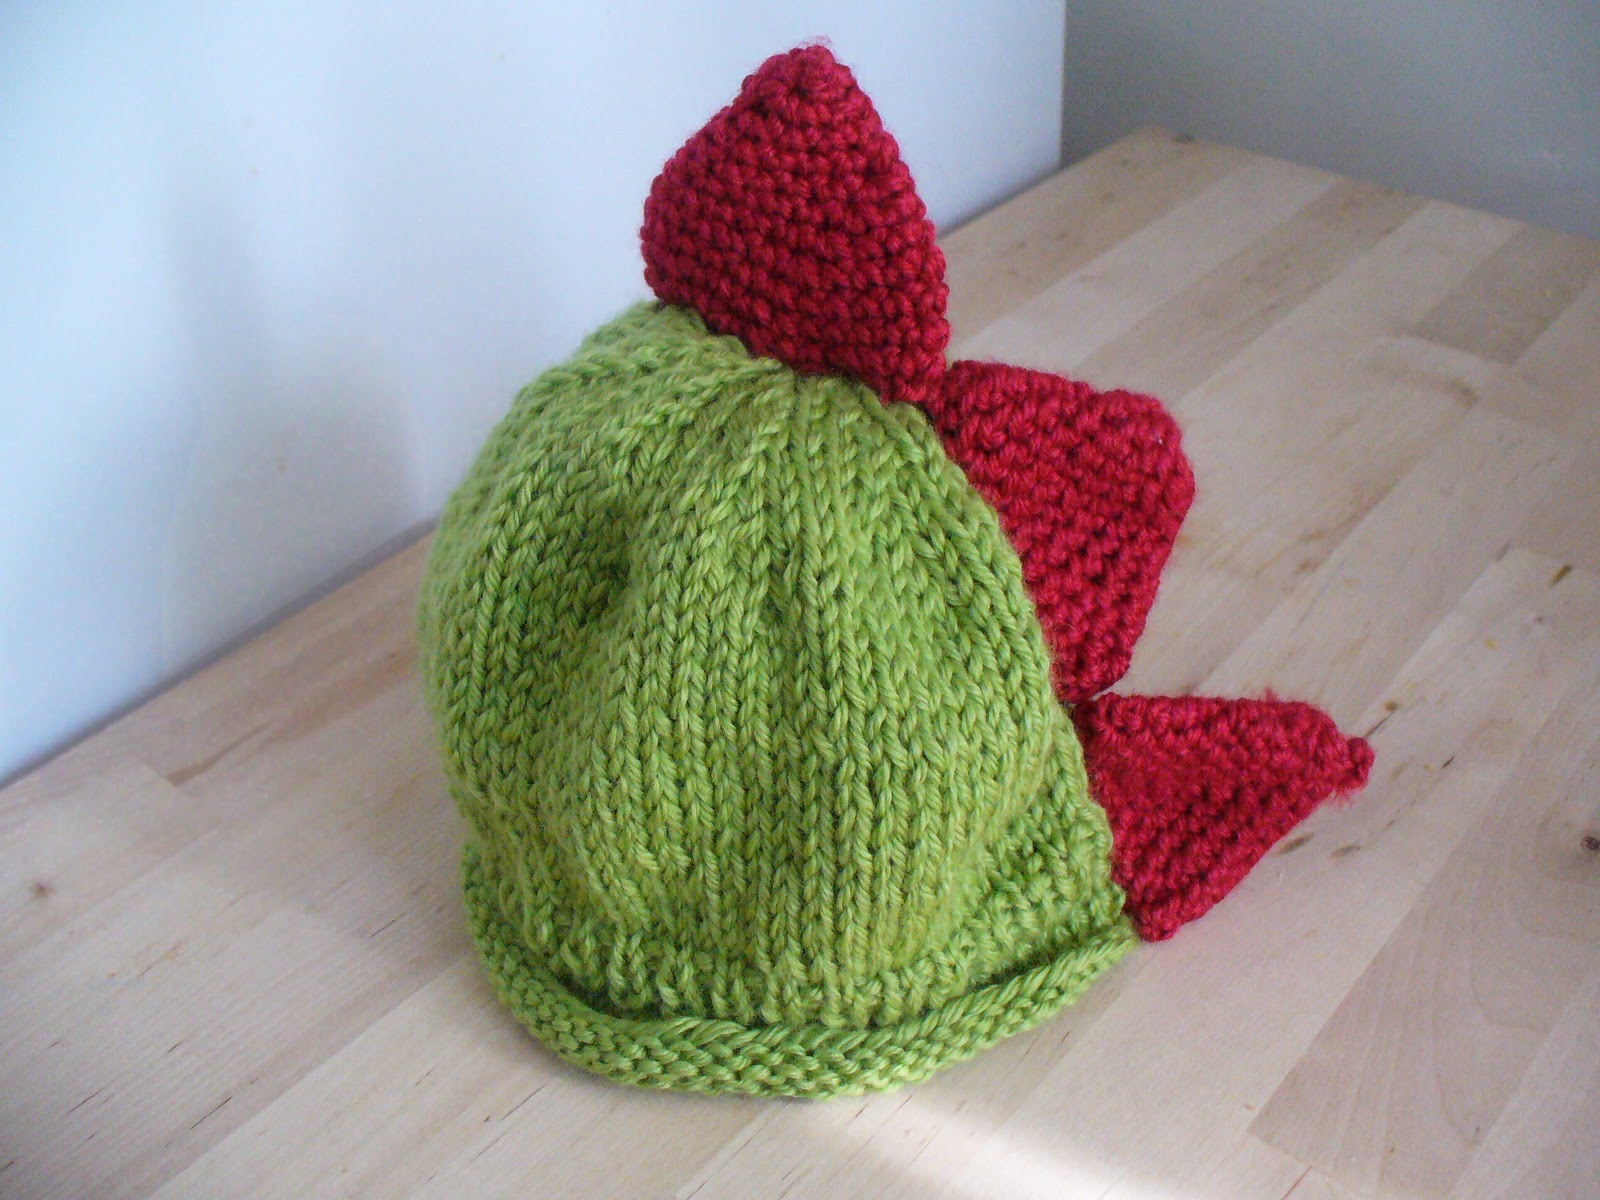 Knit Dinosaur Pattern : The Feisty Redhead: Dinosaur Knit Hat